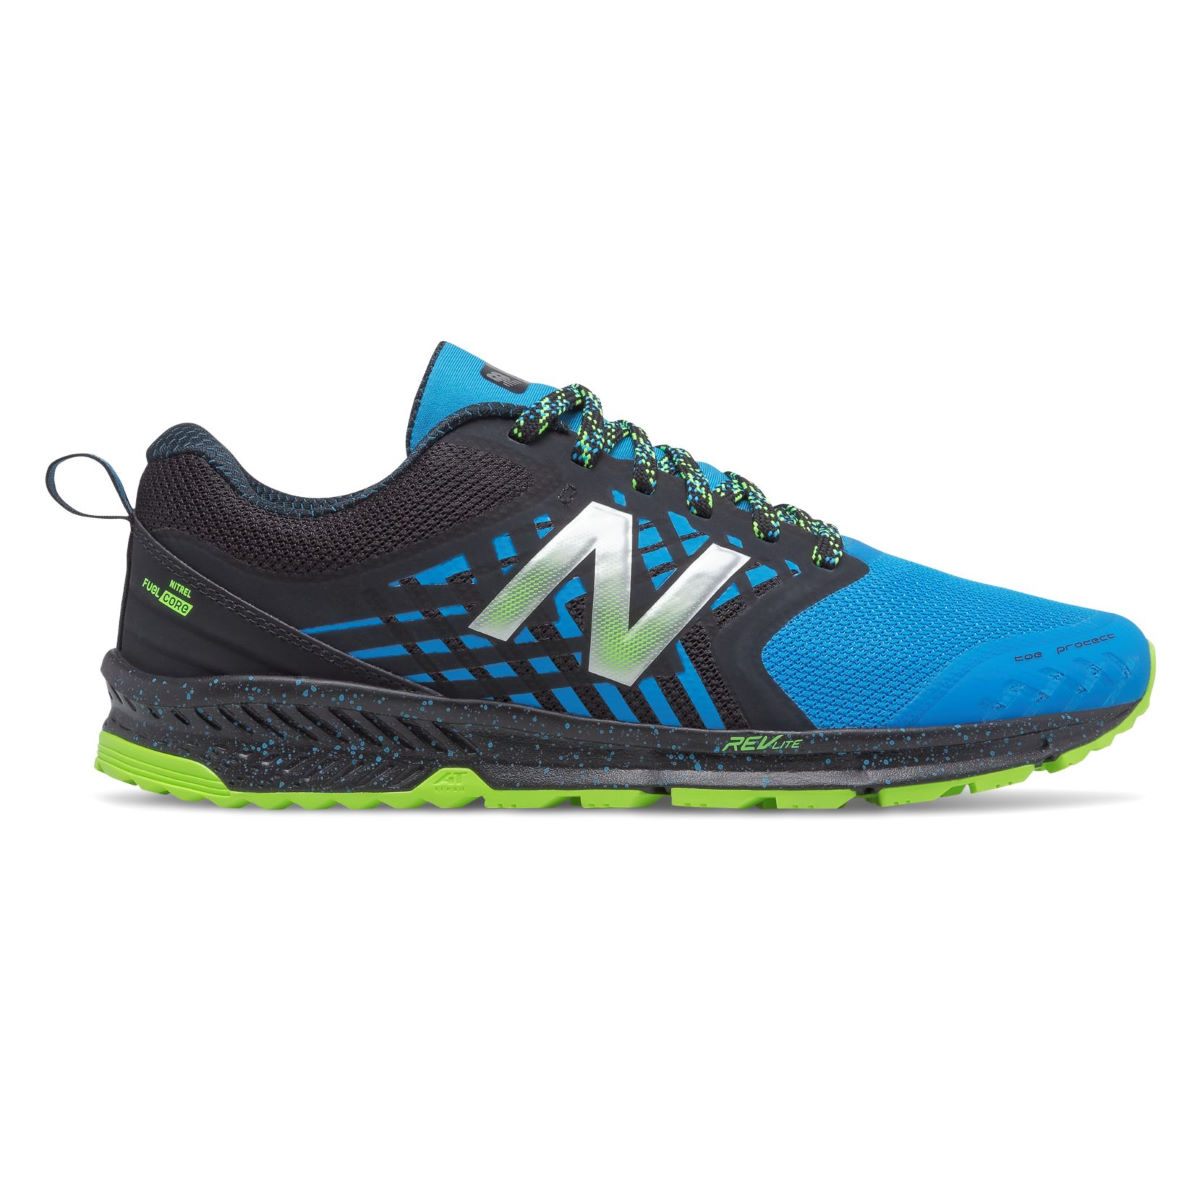 Chaussures New Balance Fuel Core Nitrel - UK 11 Noir/Bleu